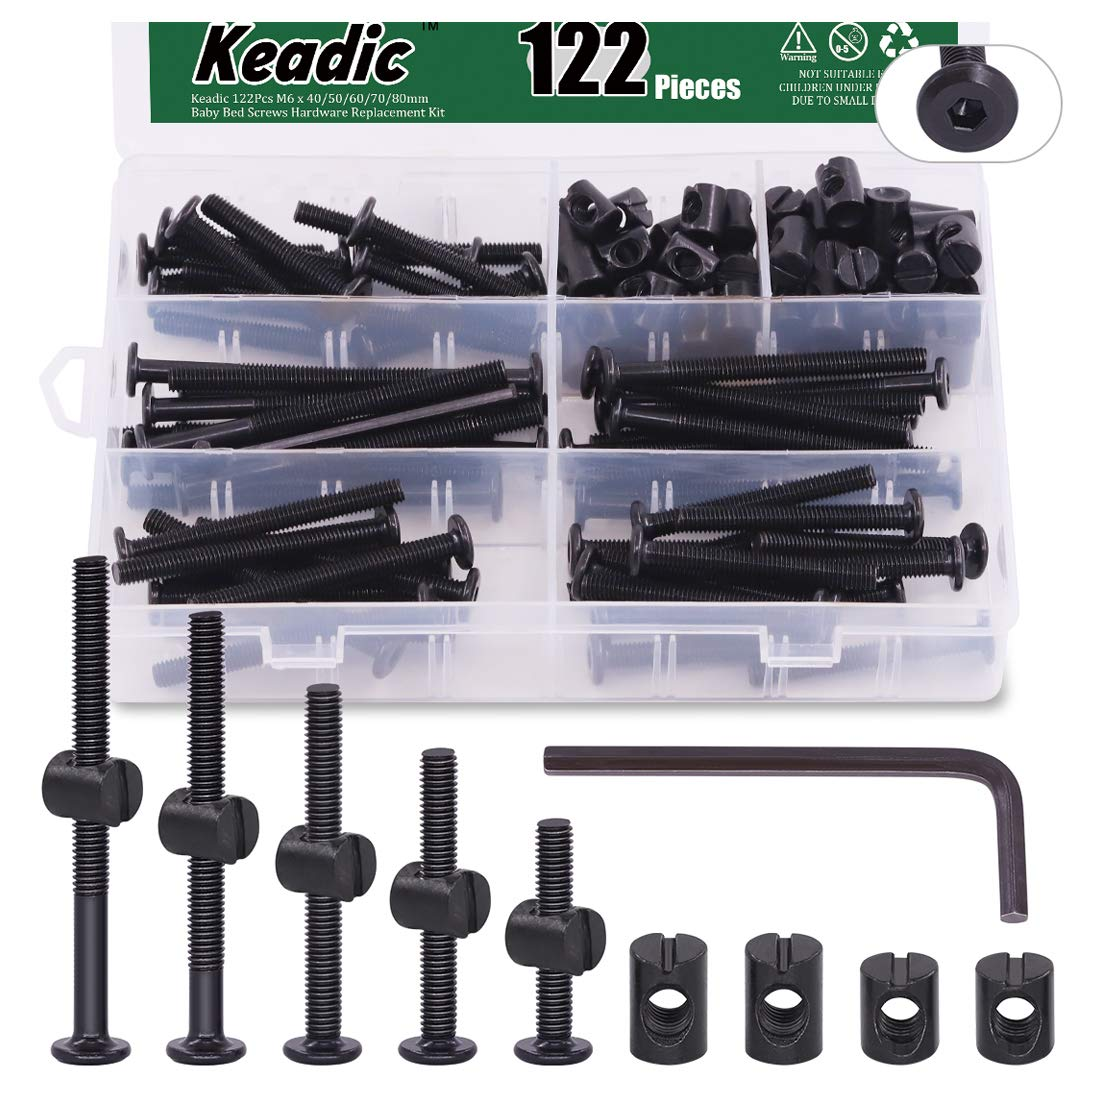 Keadic 122Pcs M6 x 40/50/60/70/80mm Baby Bed Screws Hardware Replacement Kit, Black Hex Socket Cap Bolts Barrel Nuts Assortment Kit for Furniture Cots Beds Crib, 1 Hex Key and Plastic Box for Free